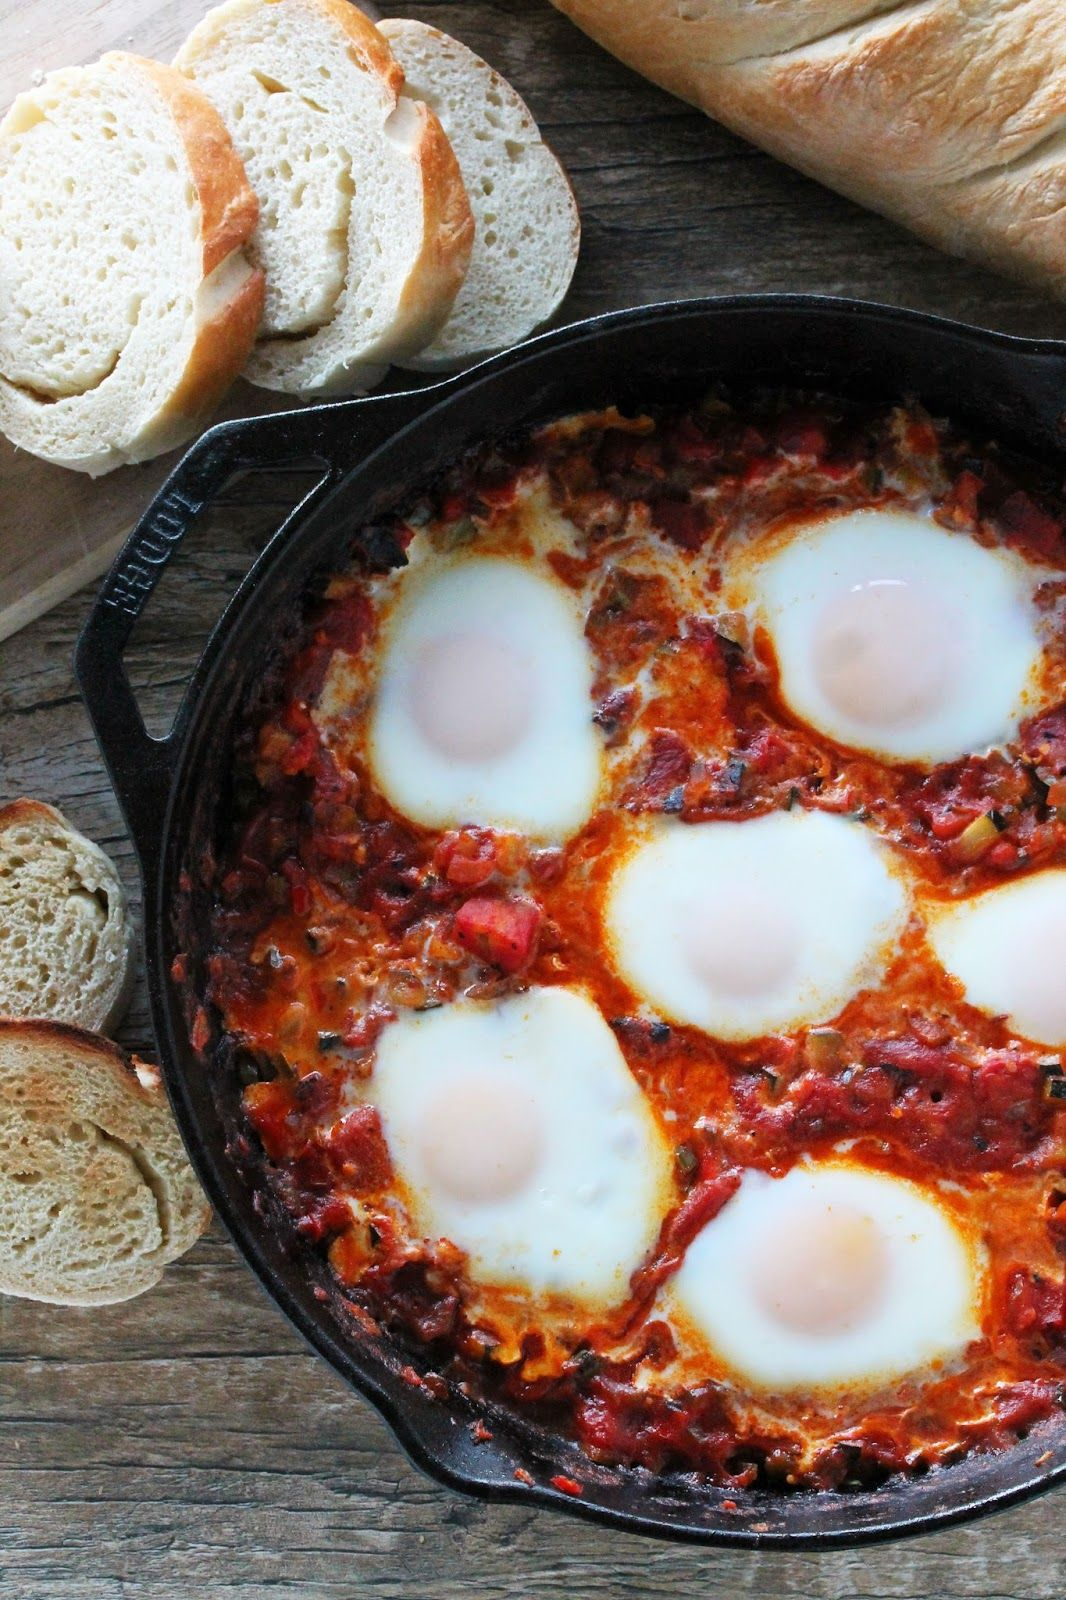 Pisto is a dish from Spain that is flavorful and full of vegetables, served over toasted bread and topped off with a fried egg. I would describe it as somewhere between French ratatouille and Middle Eastern Shakshuka, both of which are absolutely delicious. The vegetables in pisto are finely diced quite small and create an...